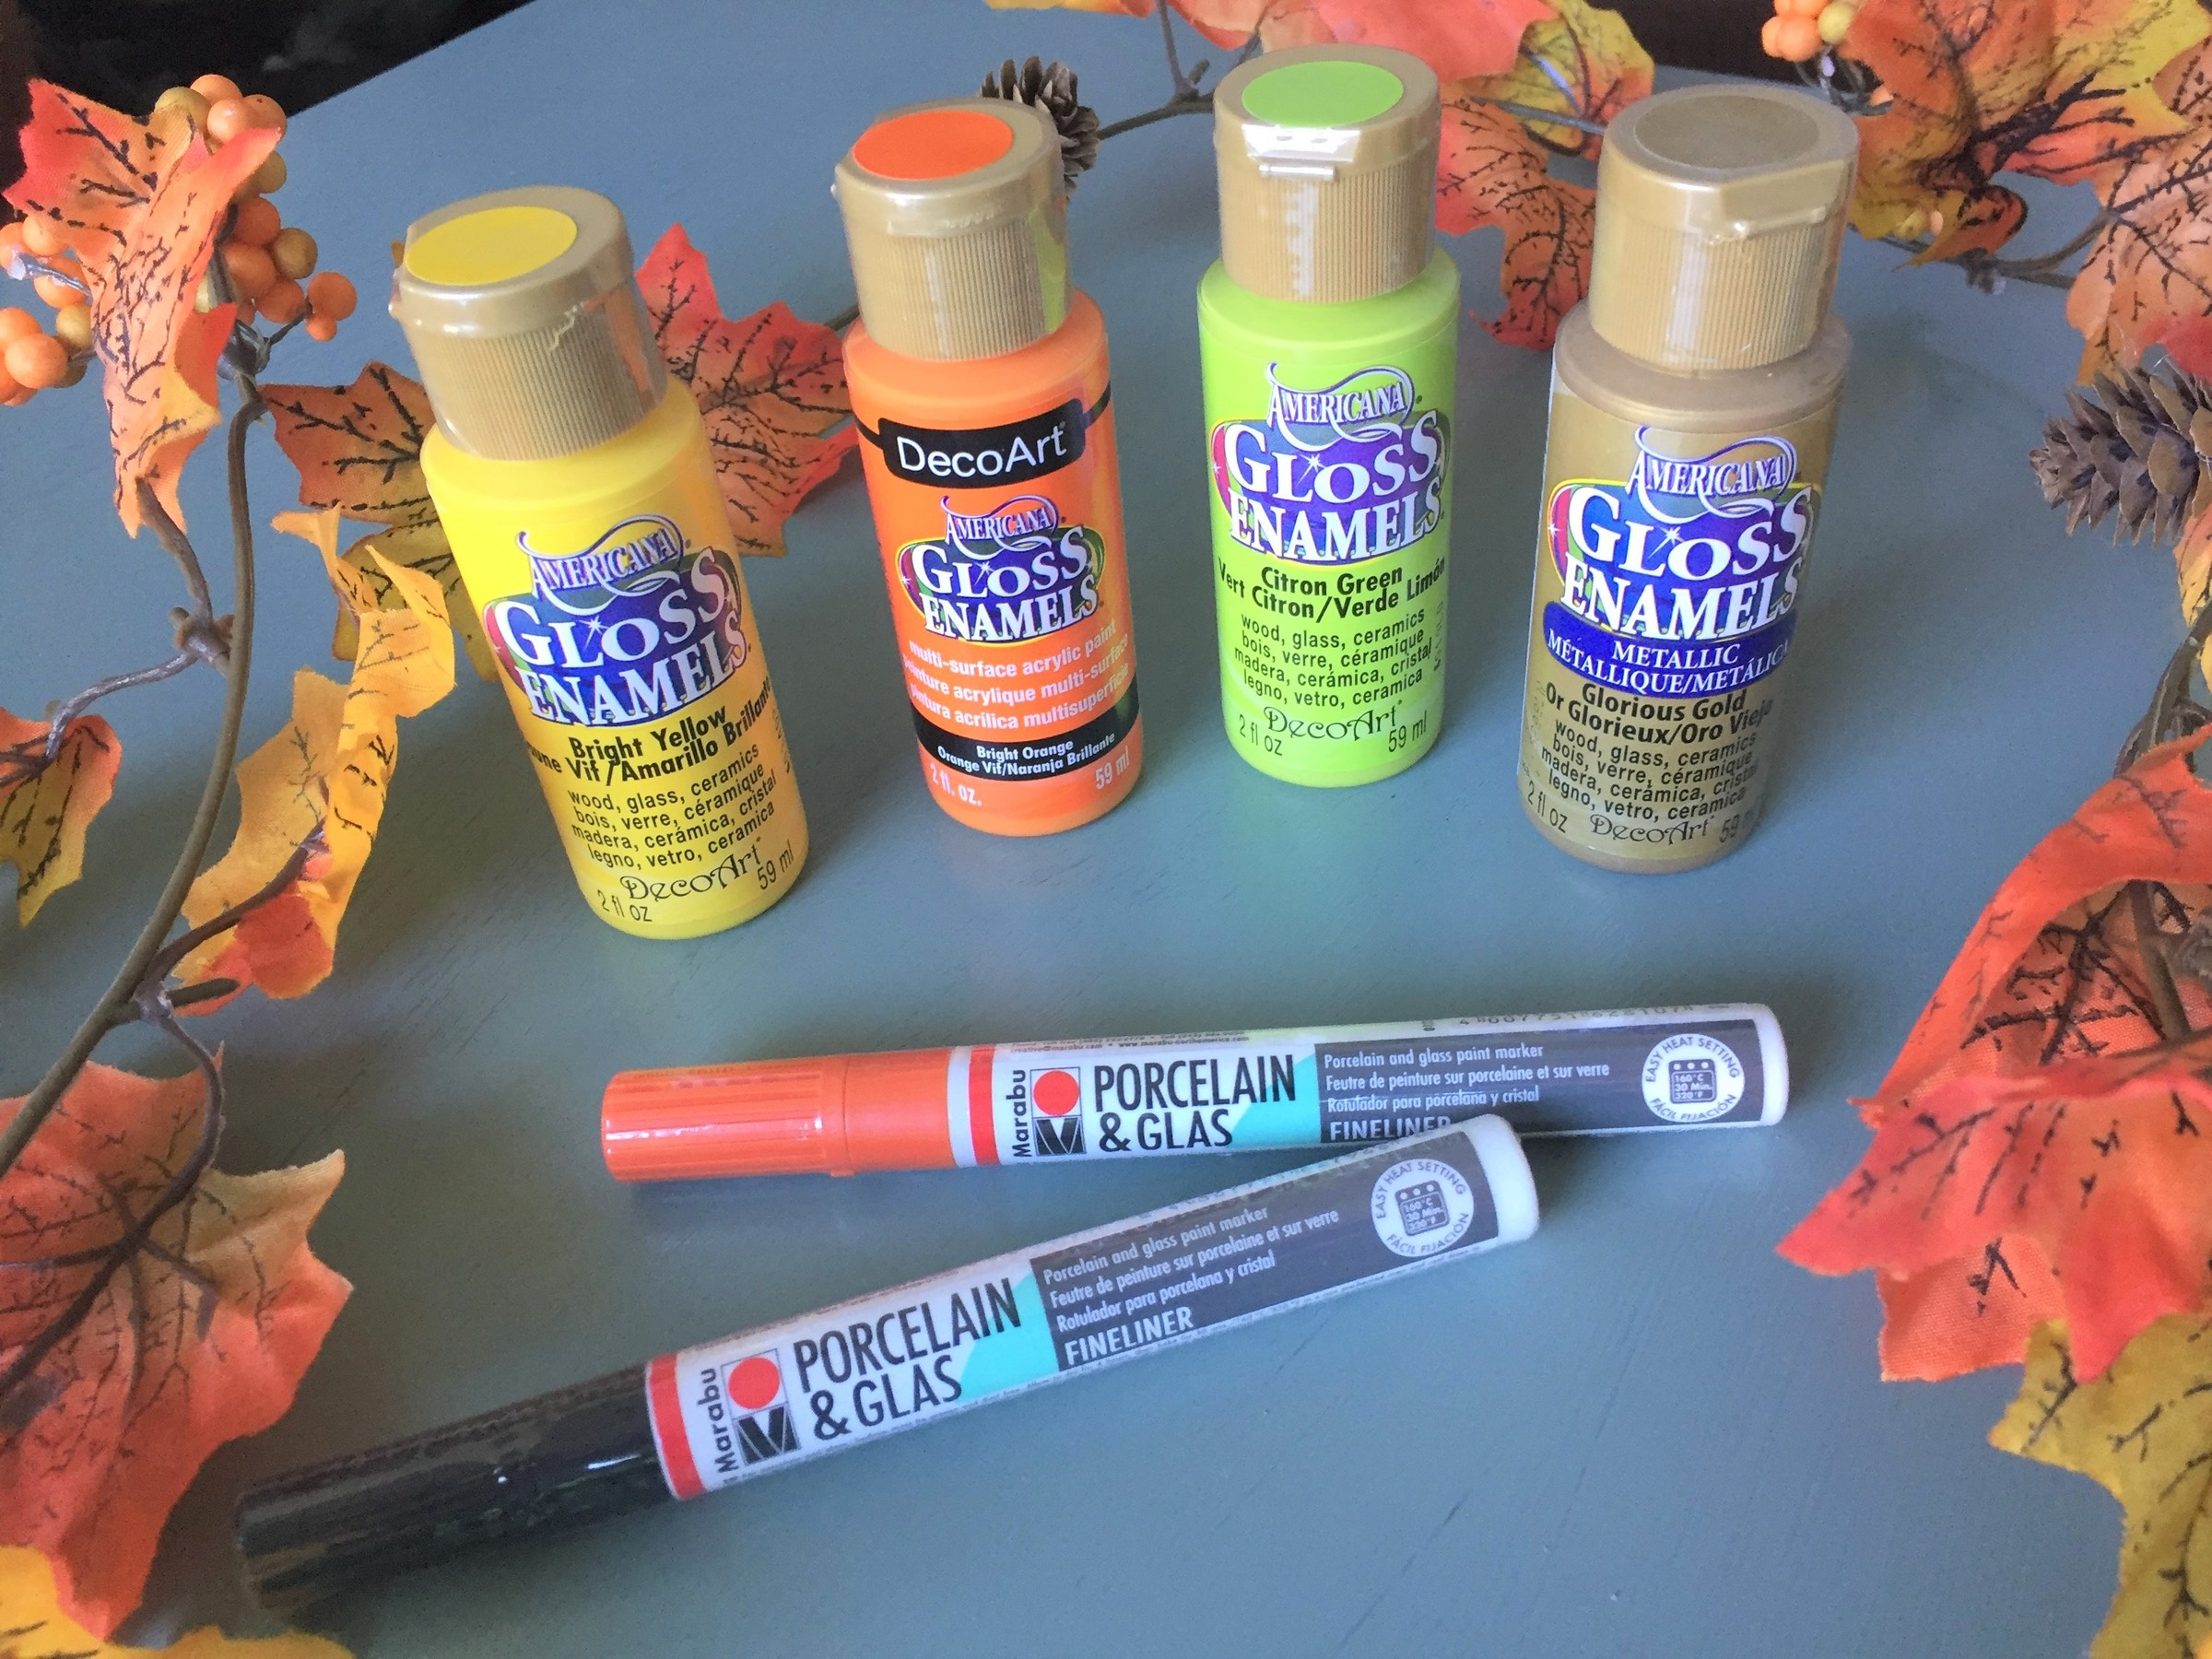 Tim's gloss enamel paint in assorted colors